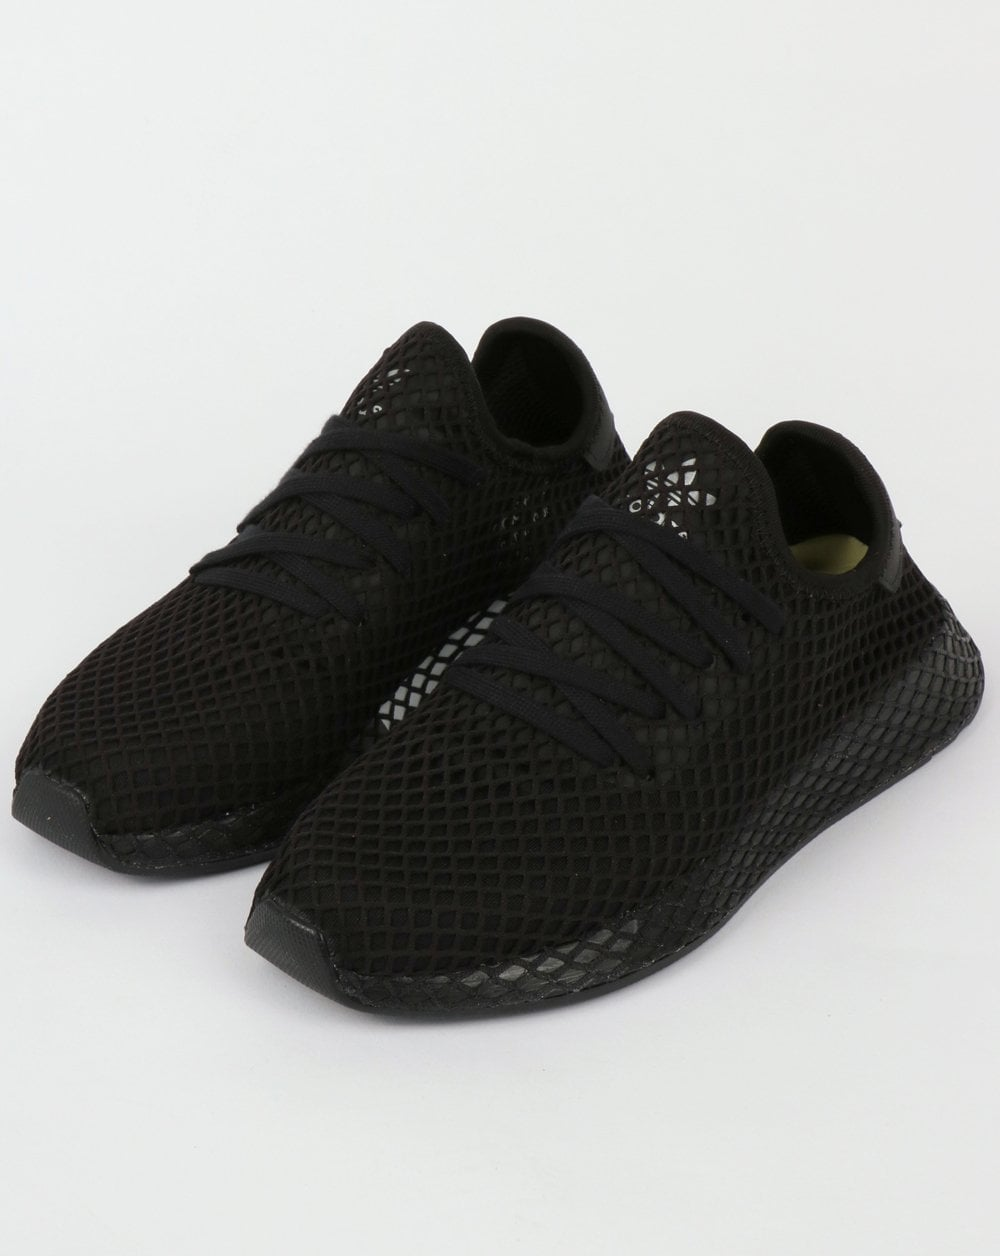 adidas Trainers Adidas Deerupt Runner Trainers Black Black White a825be7ca